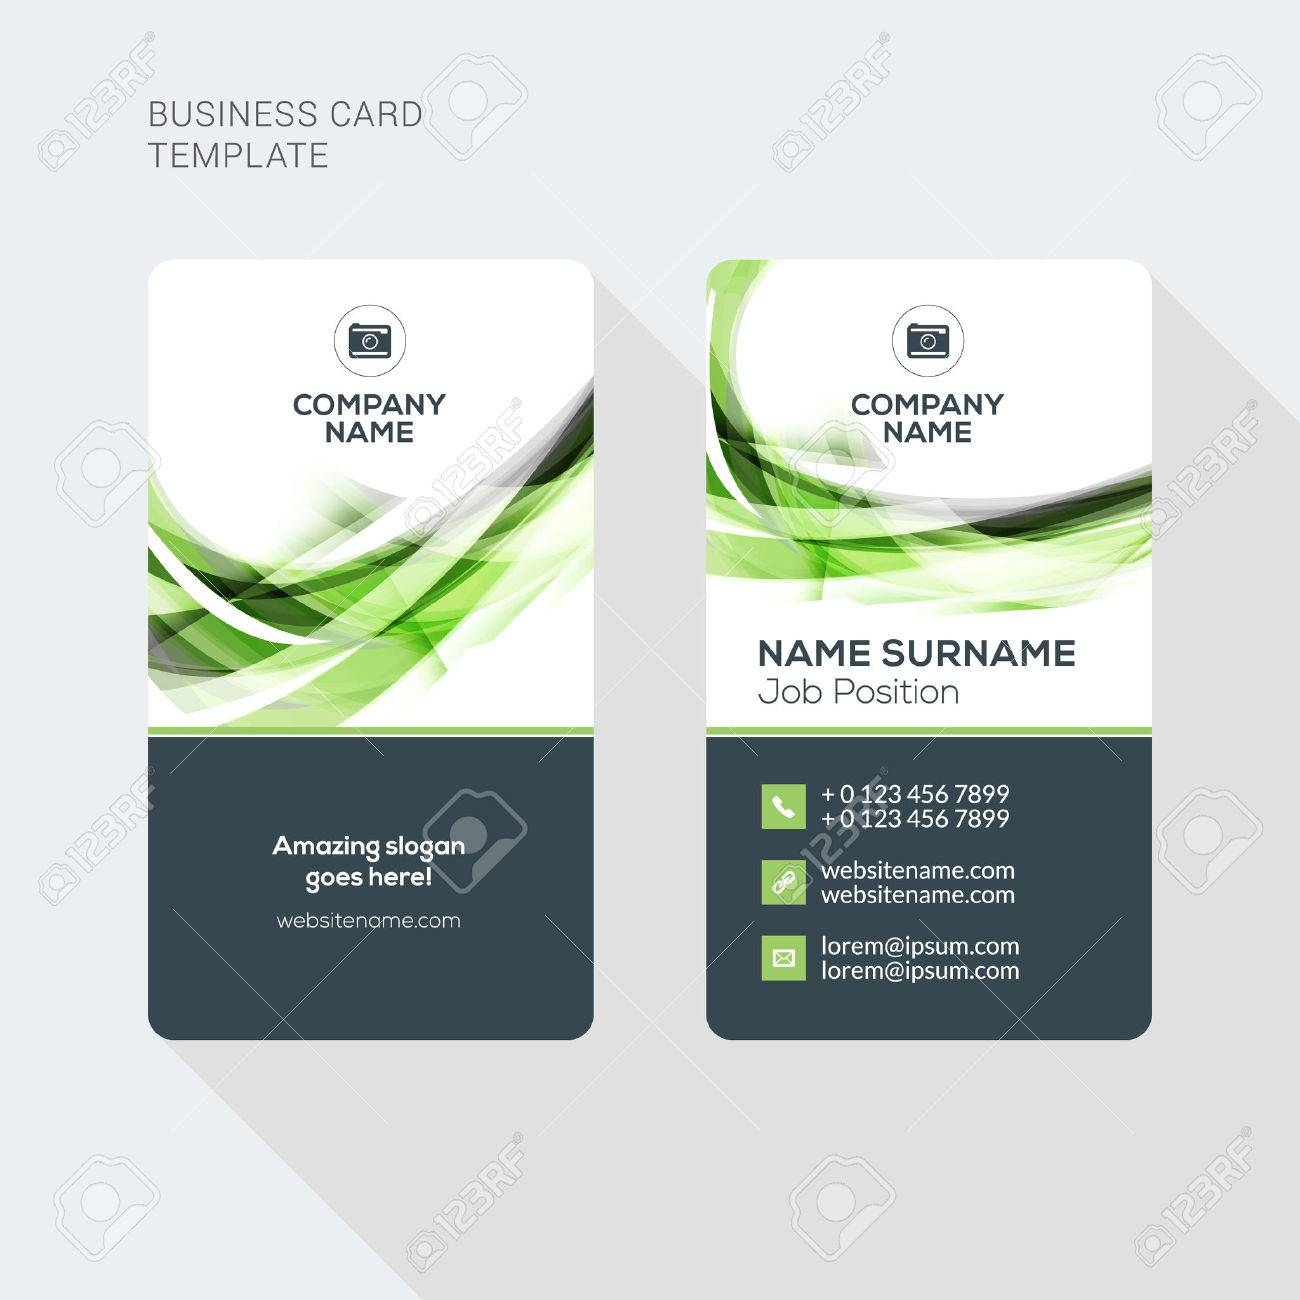 Modern Creative and Clean Two Sided Business Card Template. Flat Style Vector Illustration. Vertical Visiting or Business Card Template. Stationery Design - 52841528